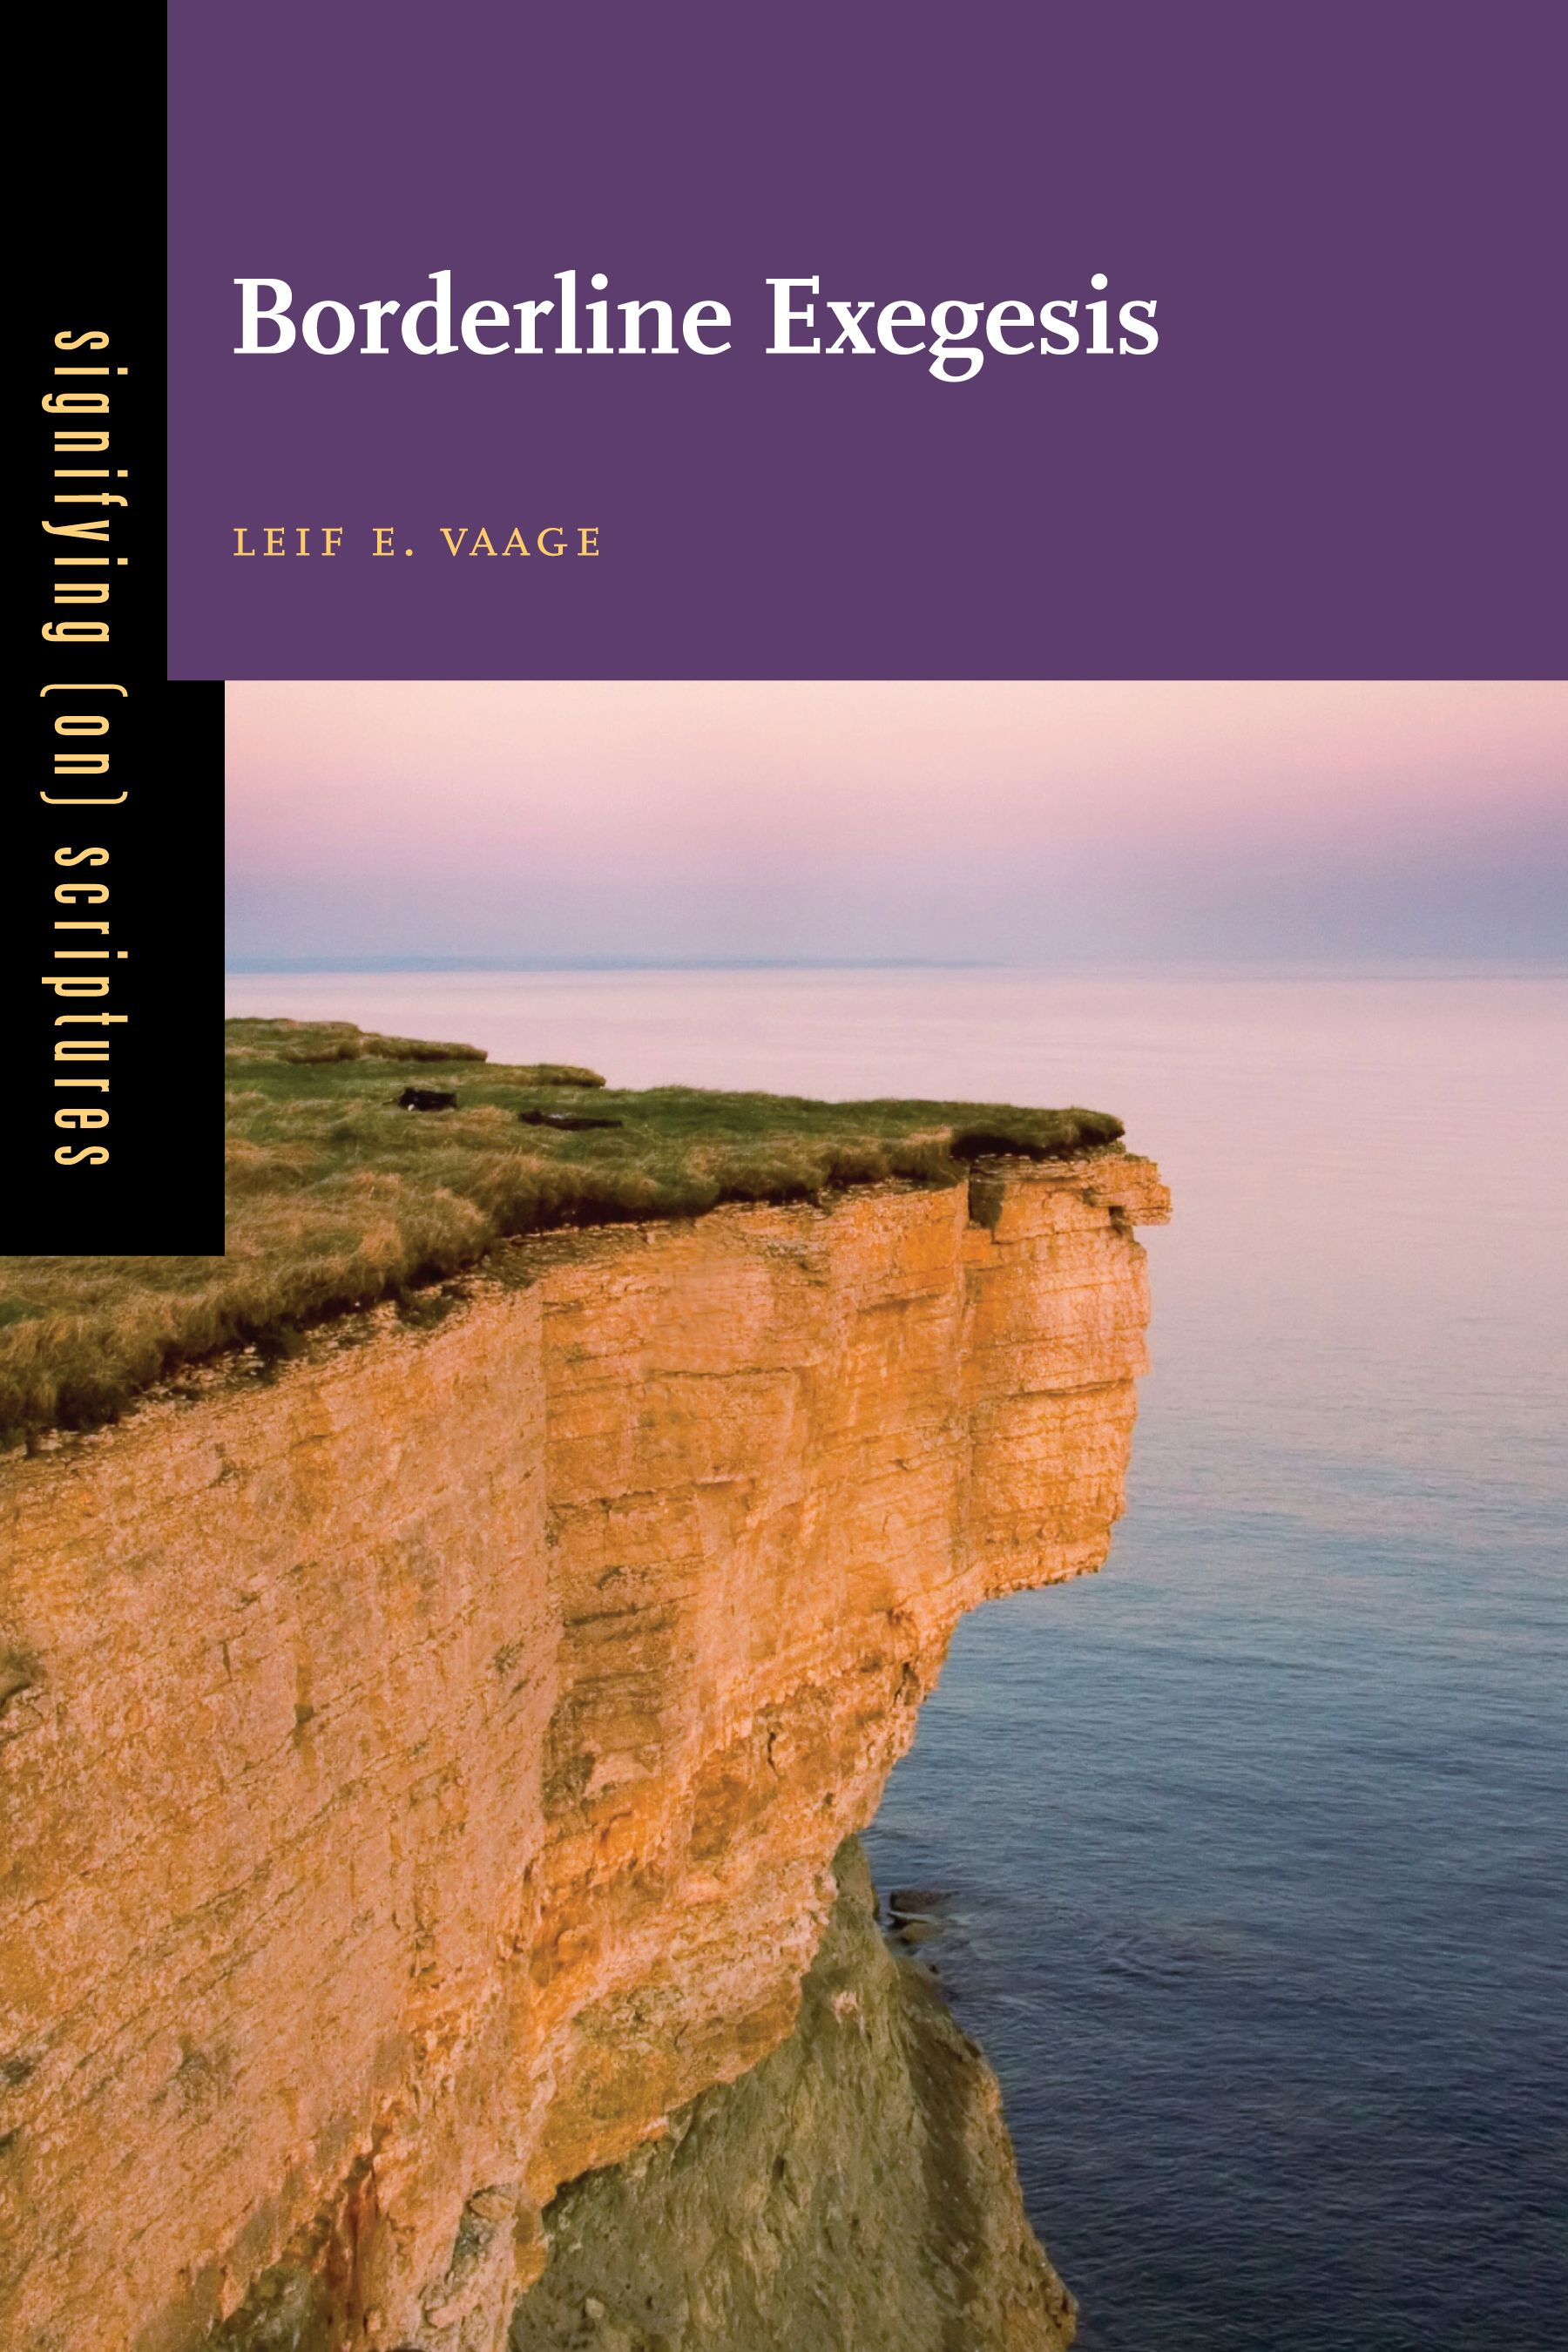 BORDERLINE EXEGESIS by Leif E. Vaage: http://www.psupress.org/books/titles/978-0-271-06287-7.html **New in Paperback**